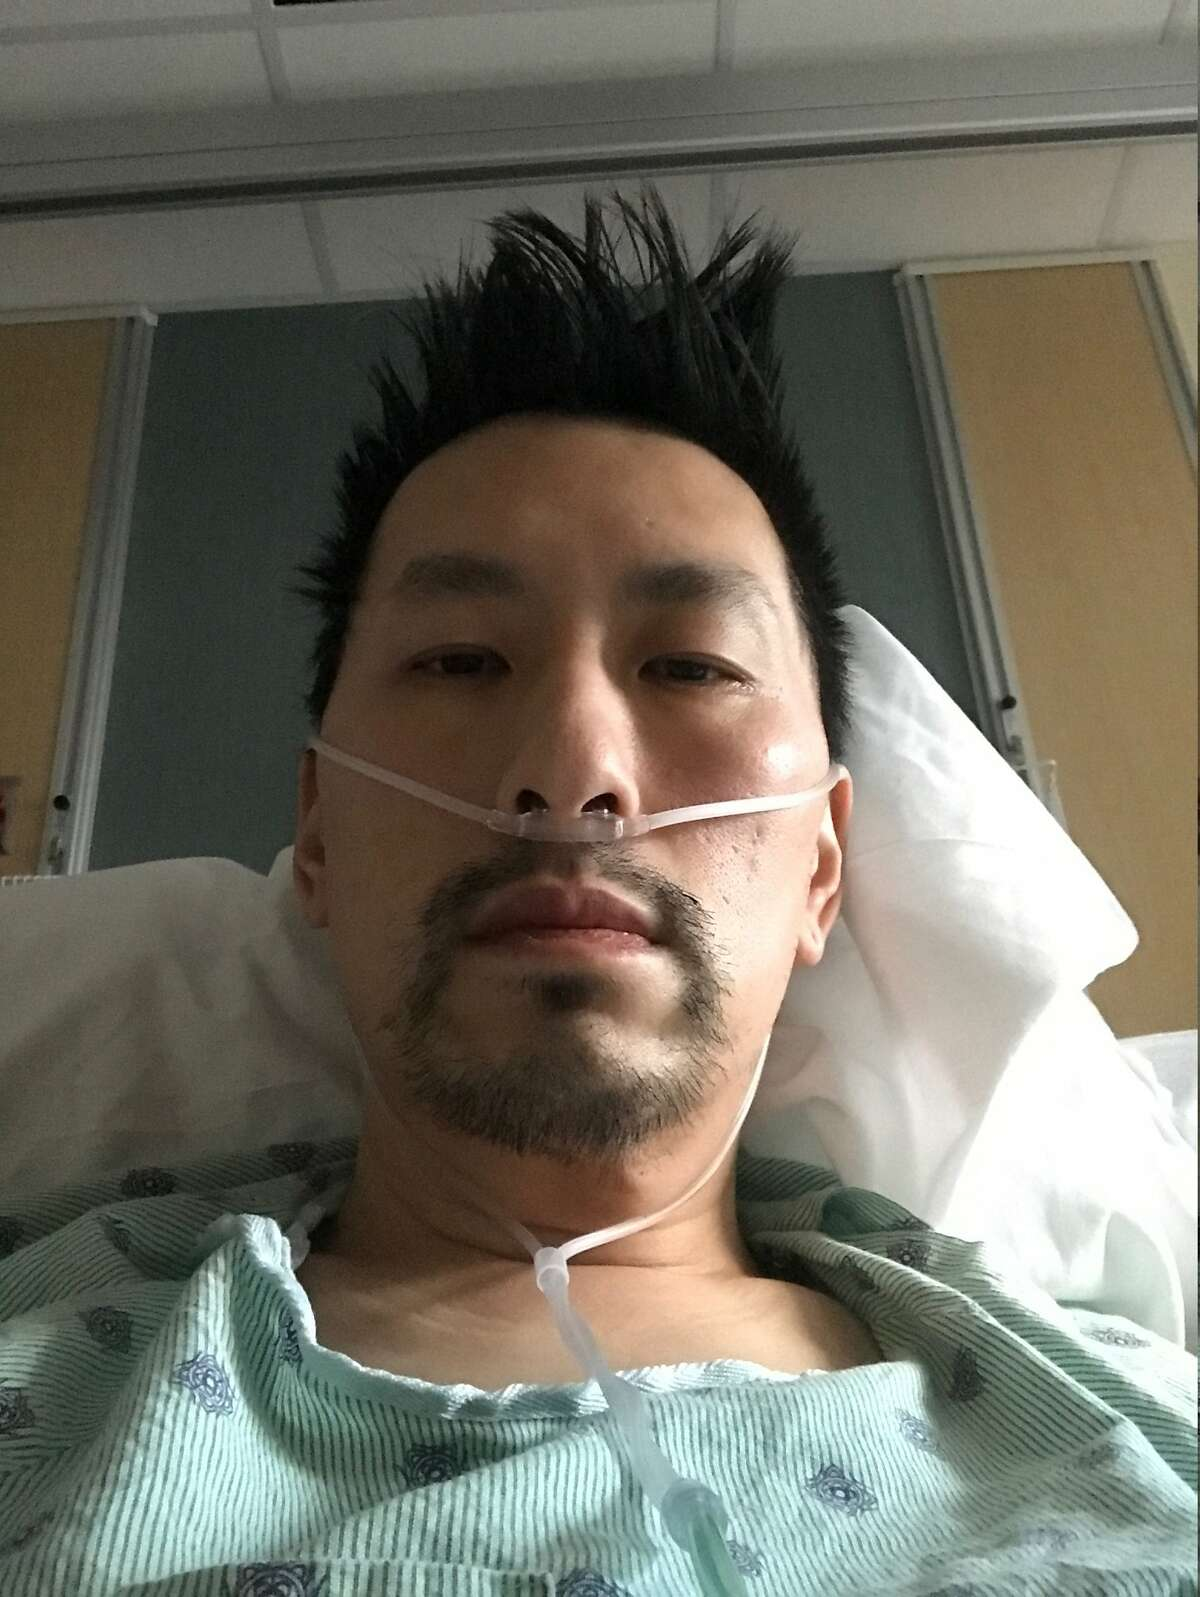 Ken Loo from his hospital bed on March 17, a few days after he was hospitalized for COVID-19.